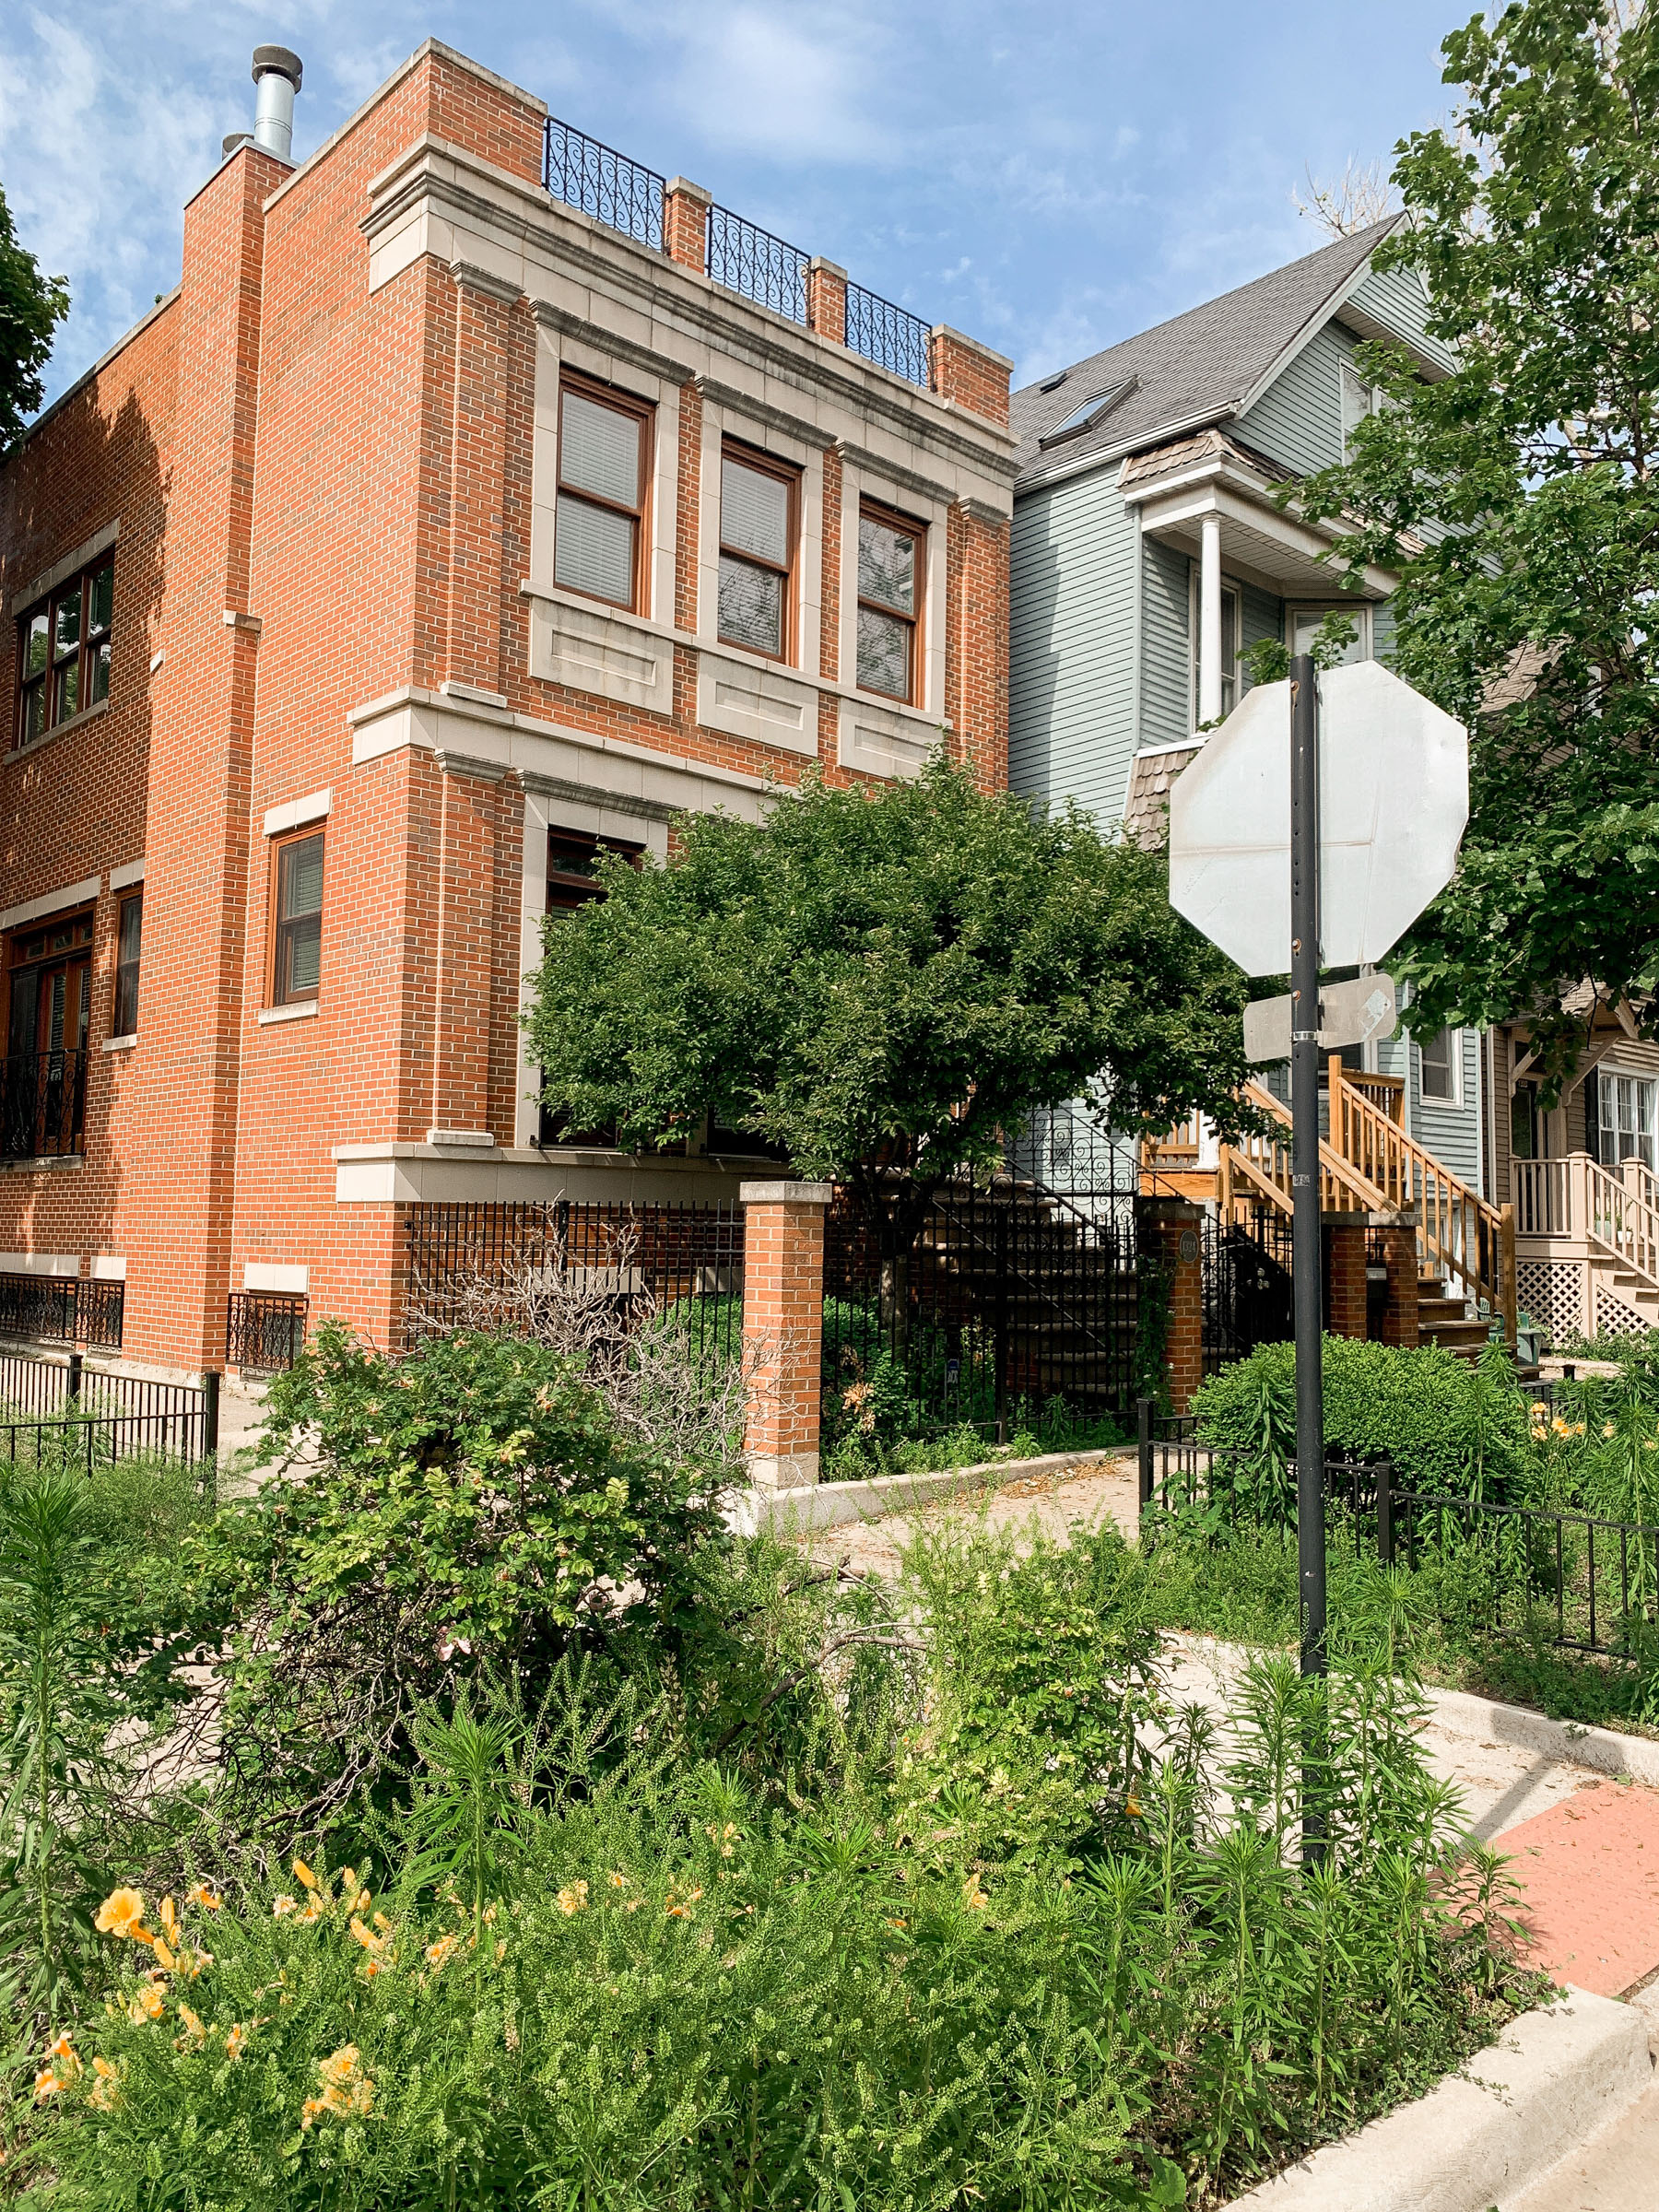 The quaint rowhouse in the best location